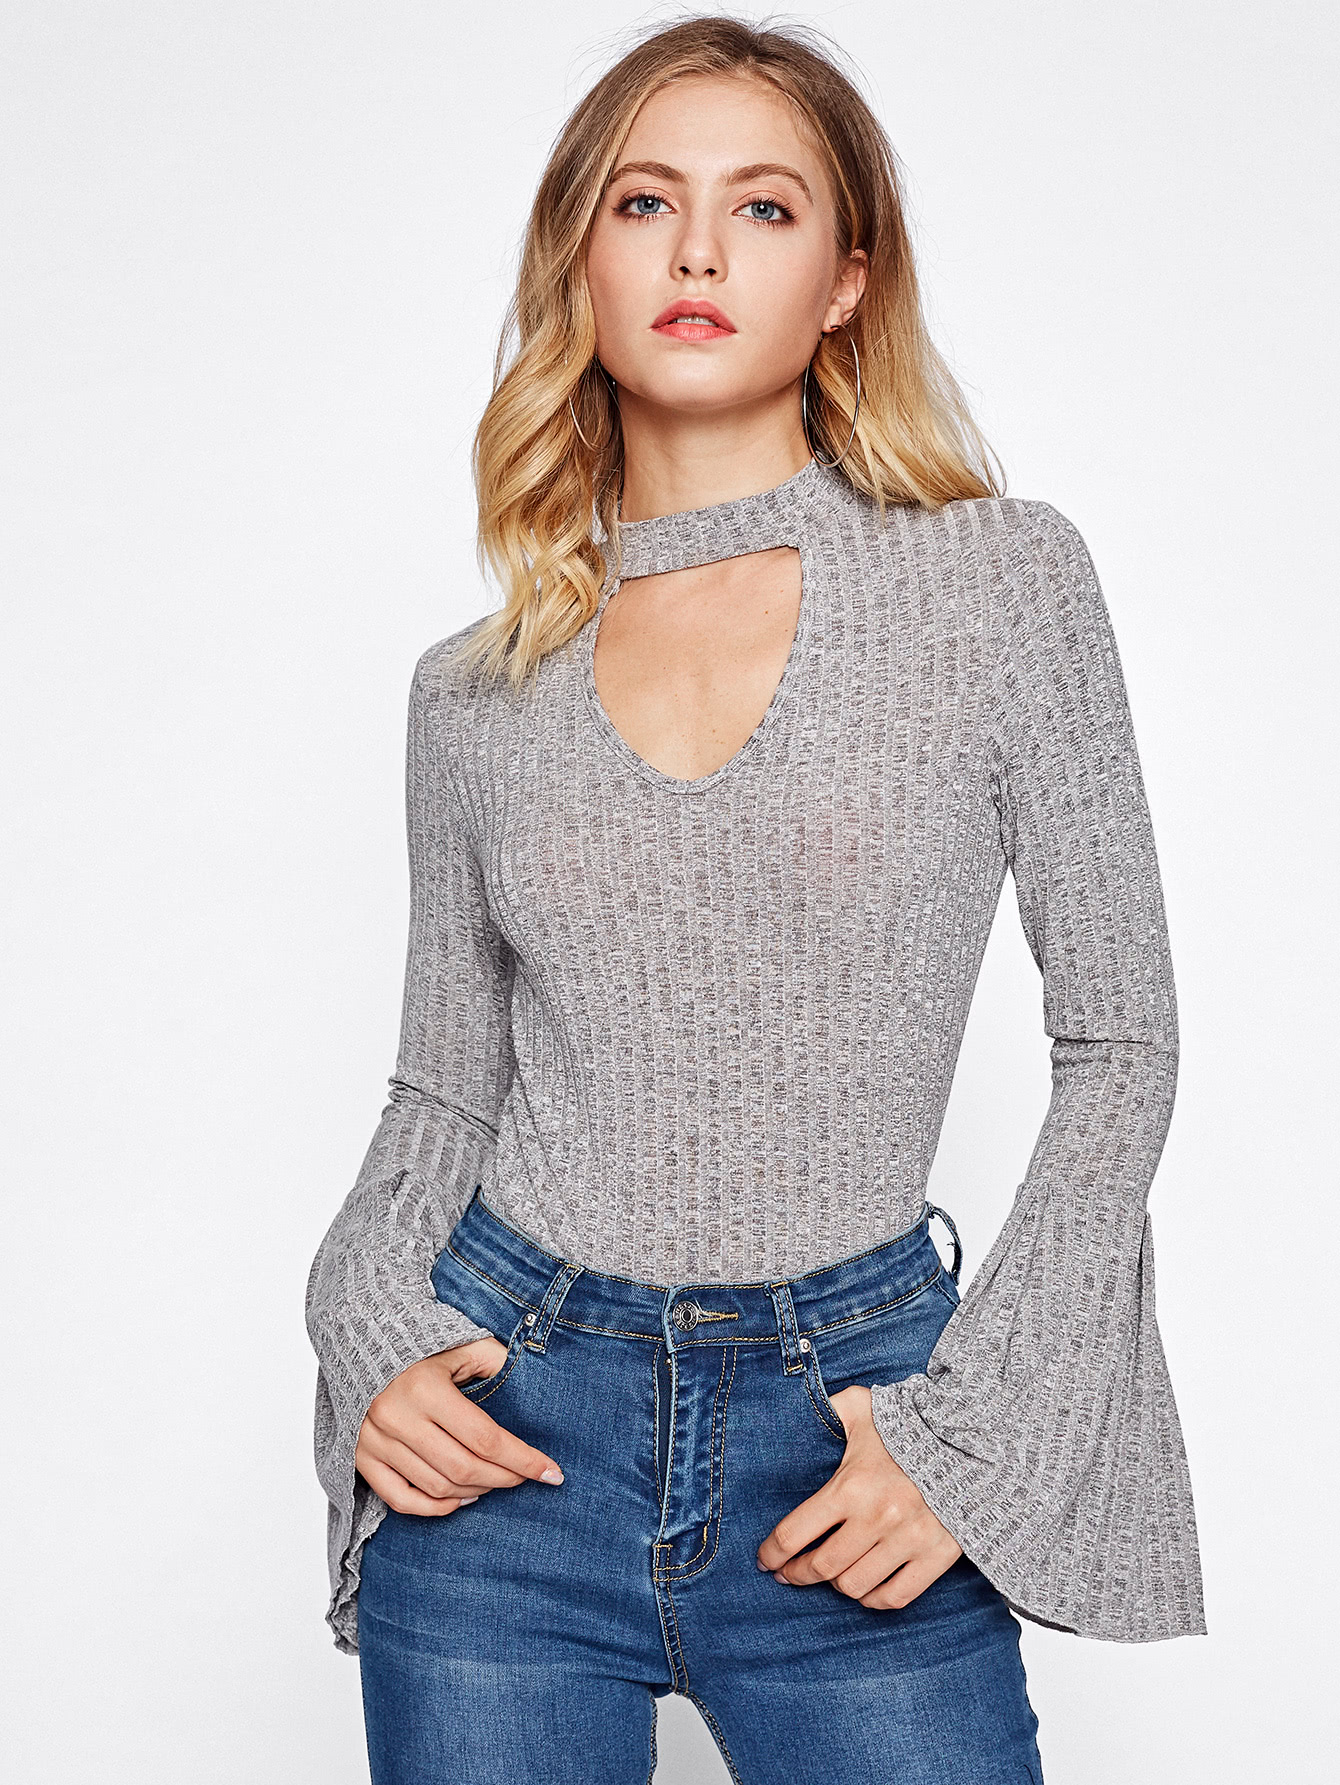 http://it.shein.com/Choker-Neck-Bell-Sleeve-Heather-Knit-Top-p-378583-cat-1738.html